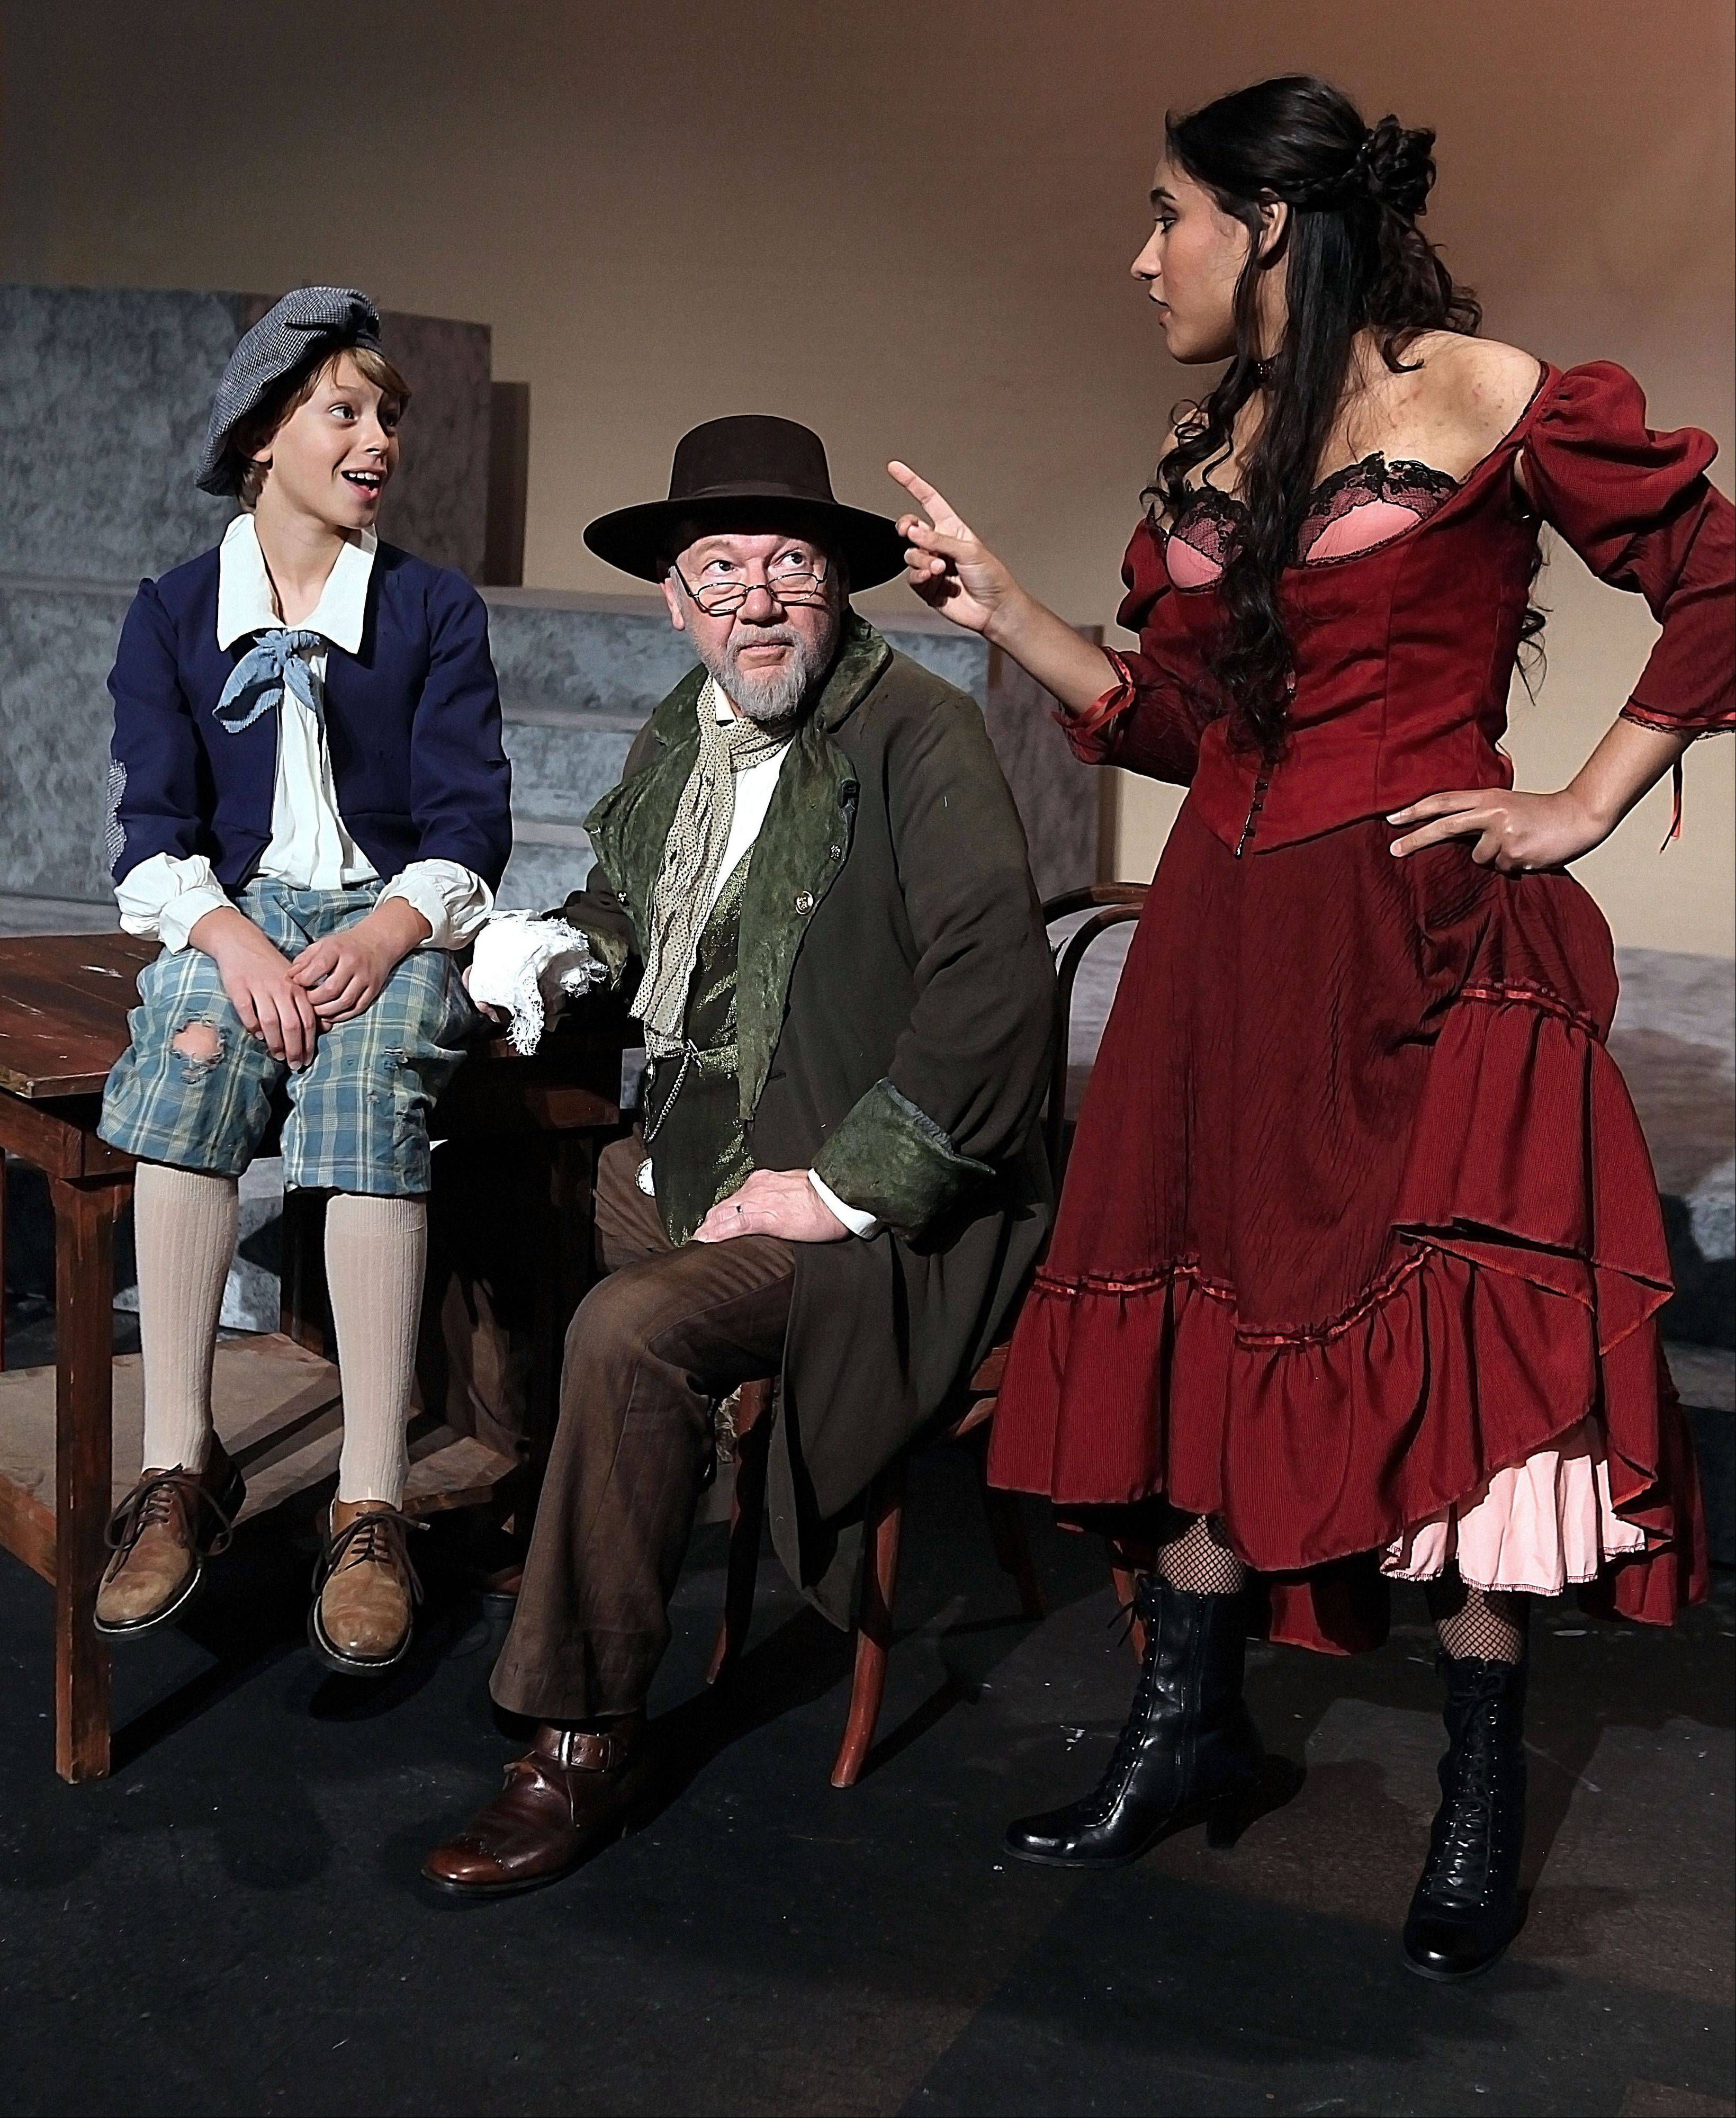 Matt Schroeder of Gurnee as Oliver, Greg Nevil of Waukegan as Fagin and Ashley Rodriguez of Hainesville as Nancy rehearse a scene from the College of Lake County summer musical, �Oliver!�